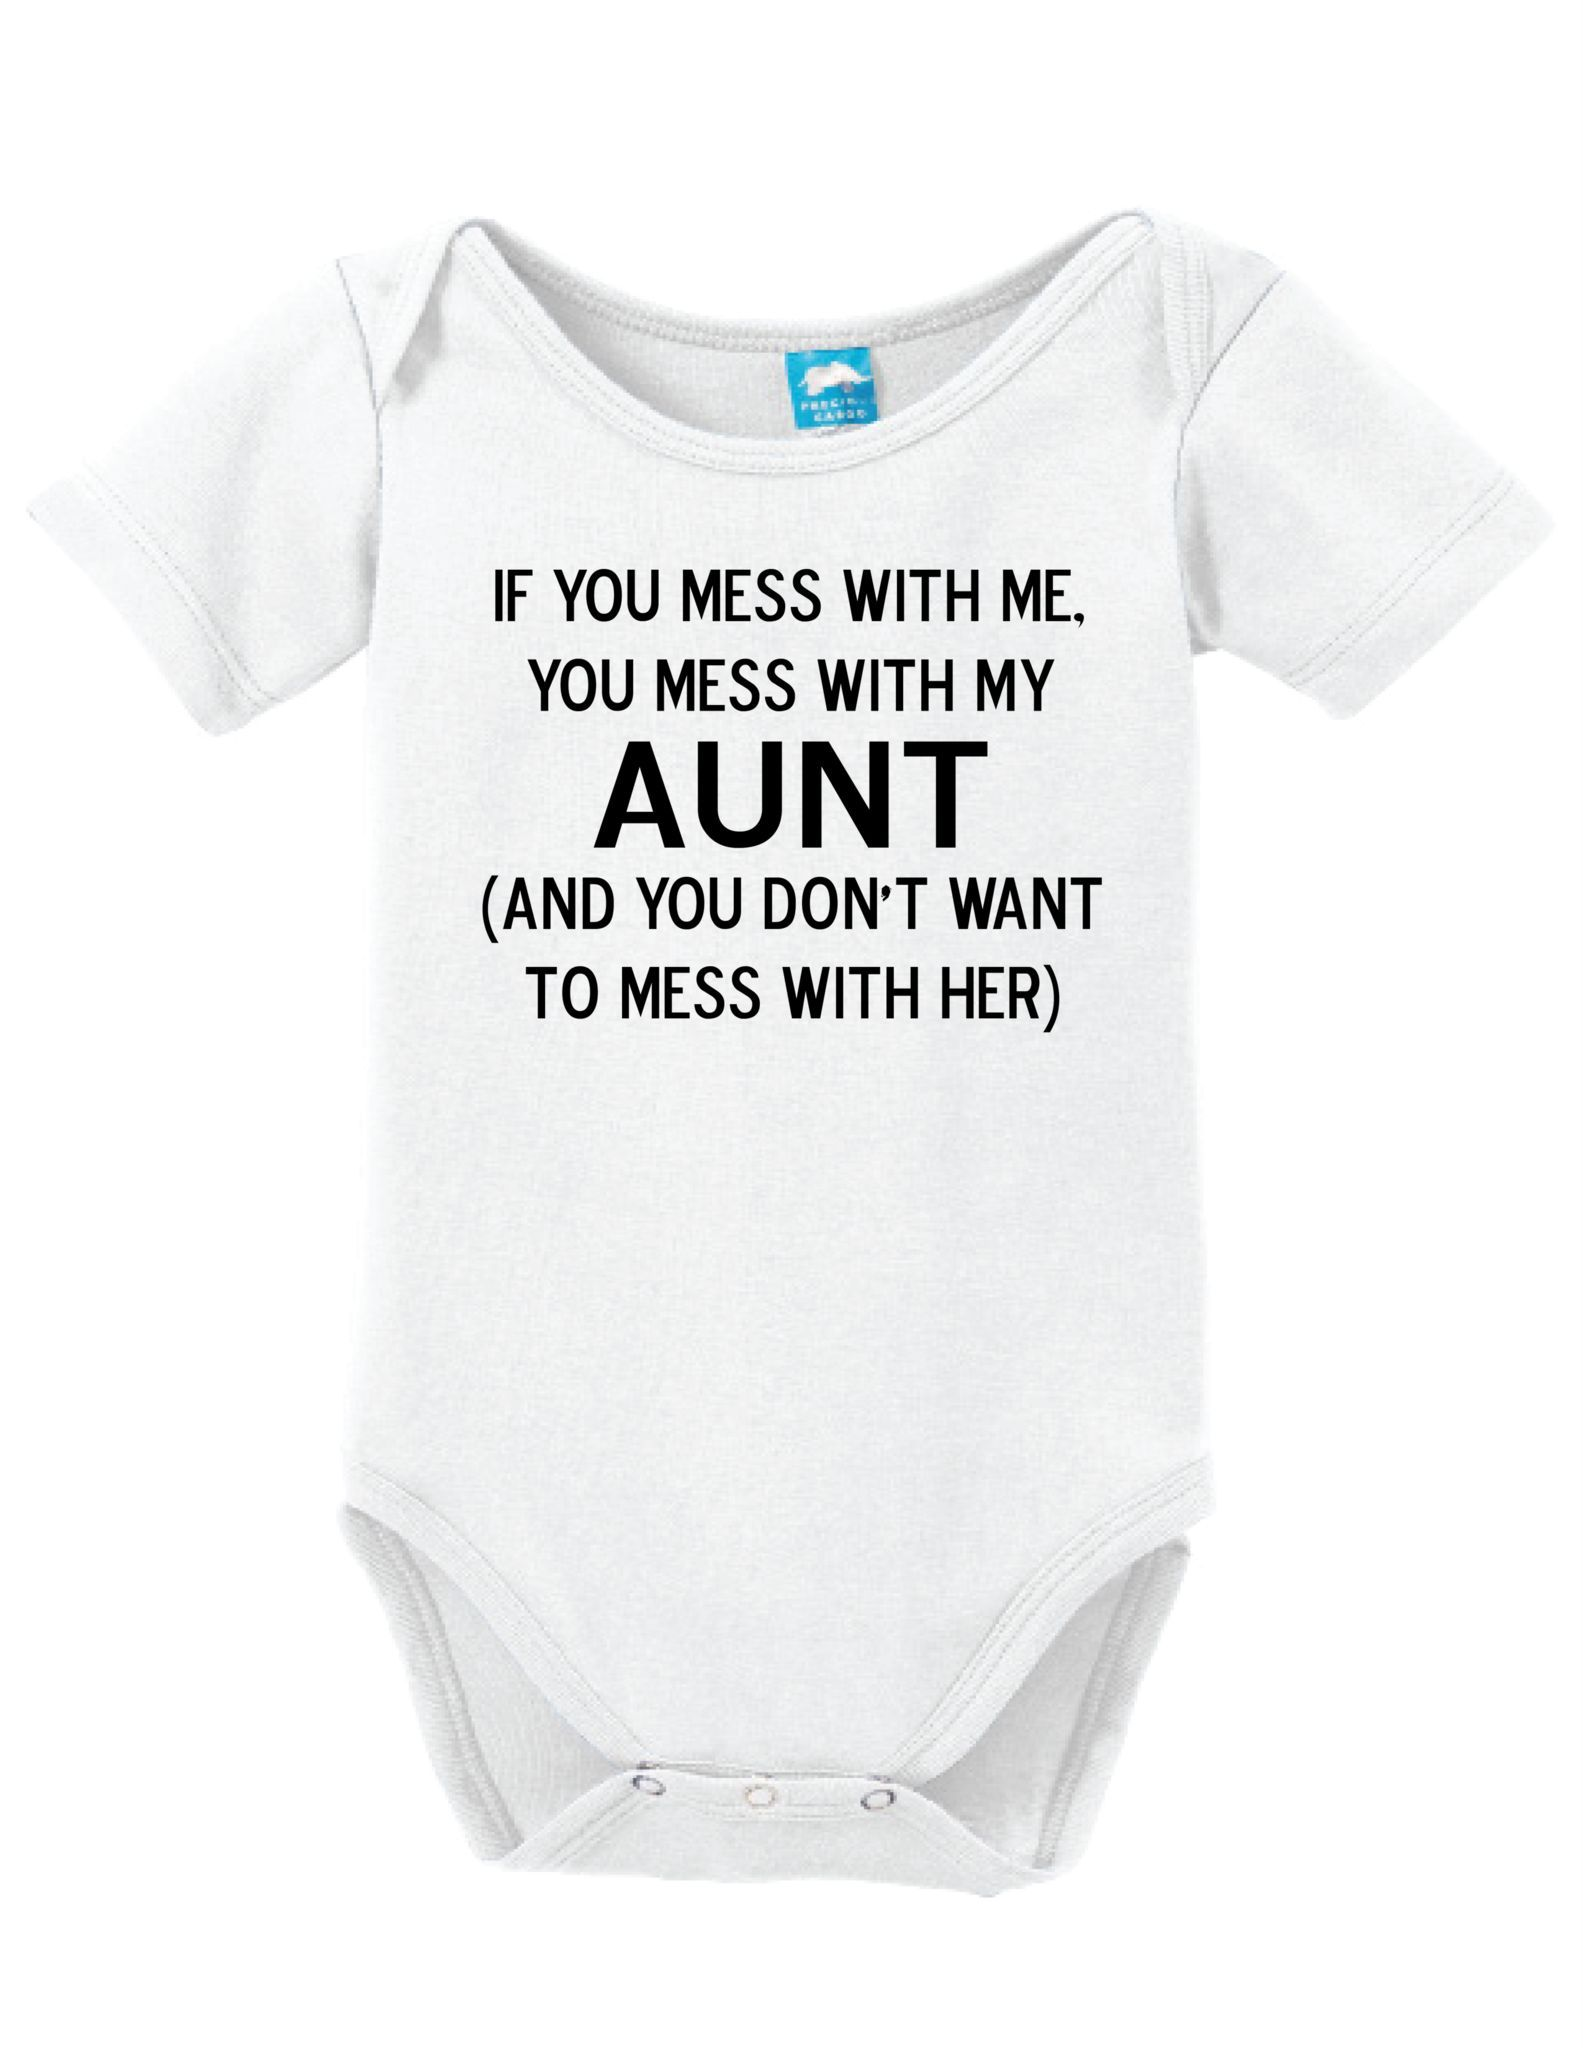 3ac66591d Mess With Me Mess With My Aunt Onesie Clothe your young ones while having  fun! These adorable onesies that are sure to bring a :) to everyone.